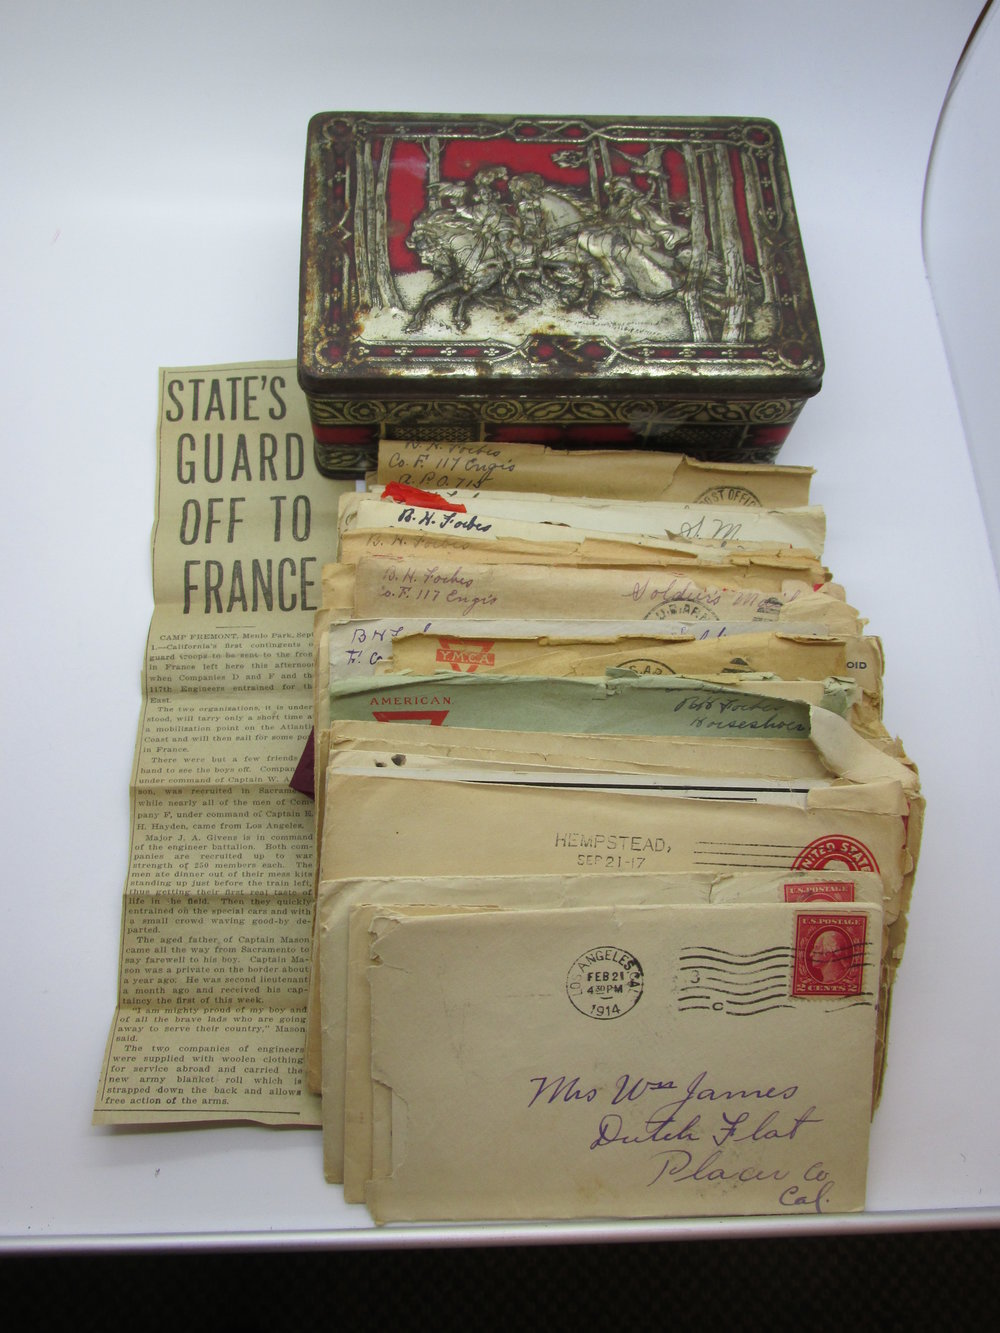 - A RARE lot of 50 letters home from a World War I US Soldier which I found in this old tin box.  This is a RARE slice of American history.  The gentleman who wrote the letters was 18 when he started them and then went to World War I and came back.  Such a rare glimpse into a young man's heart, fears, desires, and thoughts during the war.  There is a newspaper clipping from when the California Guard headed to France.  There are 2 letters from 1914, 13 from 1917, approx. 24 from 1918, and 11 from 1919.  The soldier was part of the RAINBOW DIVISION, which was formed in New York in August of 1917 as a way to get 27,000 troops to France quickly for World War I.  It was called the RAINBOW DIVISION because MacArthur said it would stretch across the US like a rainbow.   He was in the 117th Regiment, Company F Engineers.  The young soldier was part of the American Expeditionary Forces.  He started working in the Mill Creek Plant in Redlands as a young man.  He was a blacksmith and would later do horseshoeing in the war.  He traveled to Camp Mills in New York where he wrote